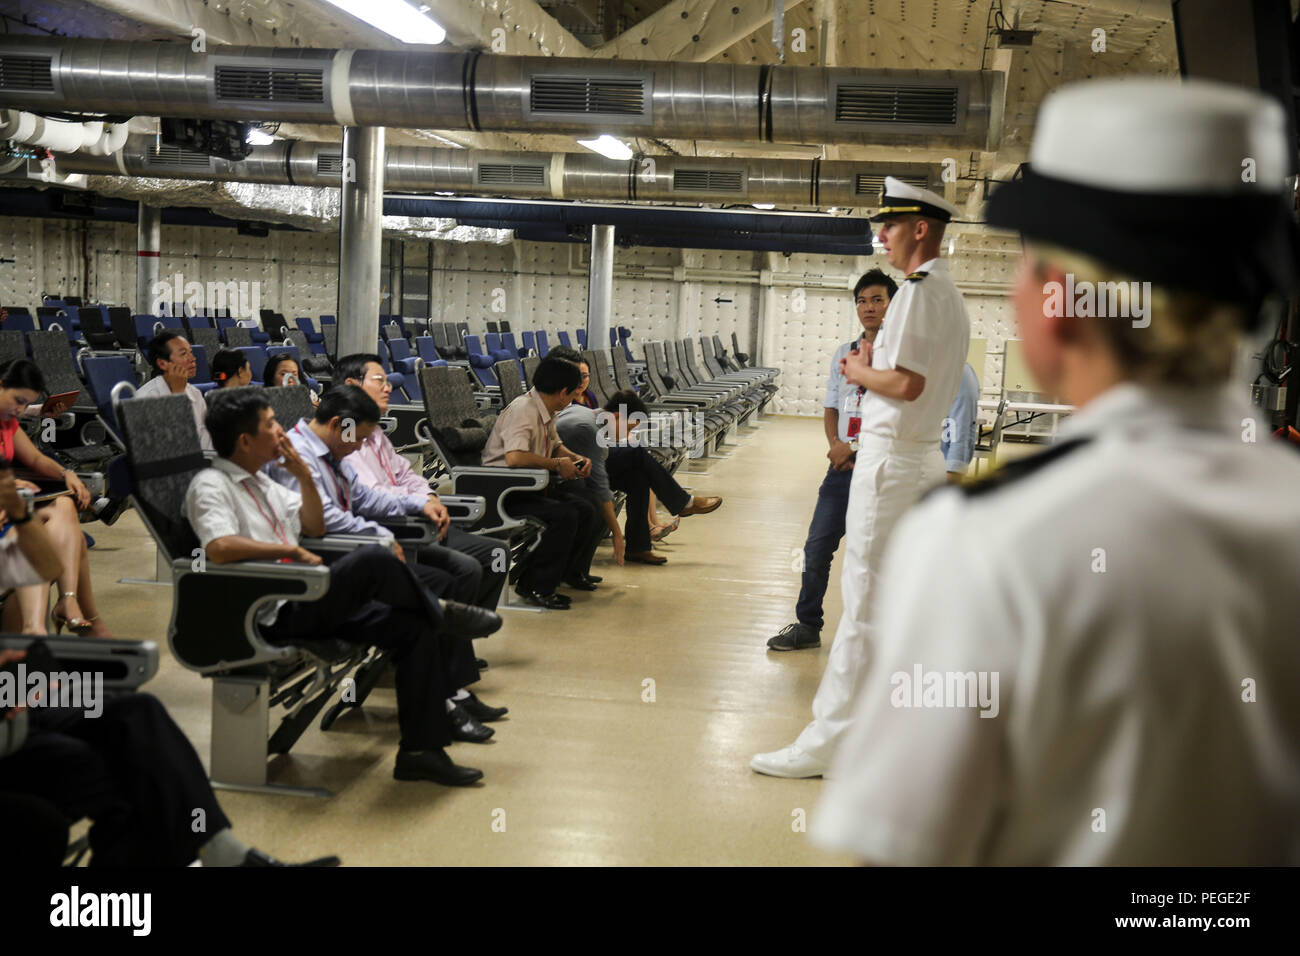 150818-M-GO800-024 DA NANG, Vietnam (Aug. 18, 2015) – Lt. j.g. Mark Roach explains to local Vietnamese officials the function of the 312 room aboard the Military Sealift Command joint high speed vessel USNS Millinocket (JHSV 3) during a ship tour Aug. 18. Task Force Forager, embarked aboard the Millinocket  is serving as the secondary platform for Pacific Partnership, led by an expeditionary command element from the Navy's 30th Naval Construction Regiment (30 NCR) from Port Hueneme, Calif. Now in its 10th iteration, Pacific Partnership is the largest annual multilateral humanitarian assistance - Stock Image